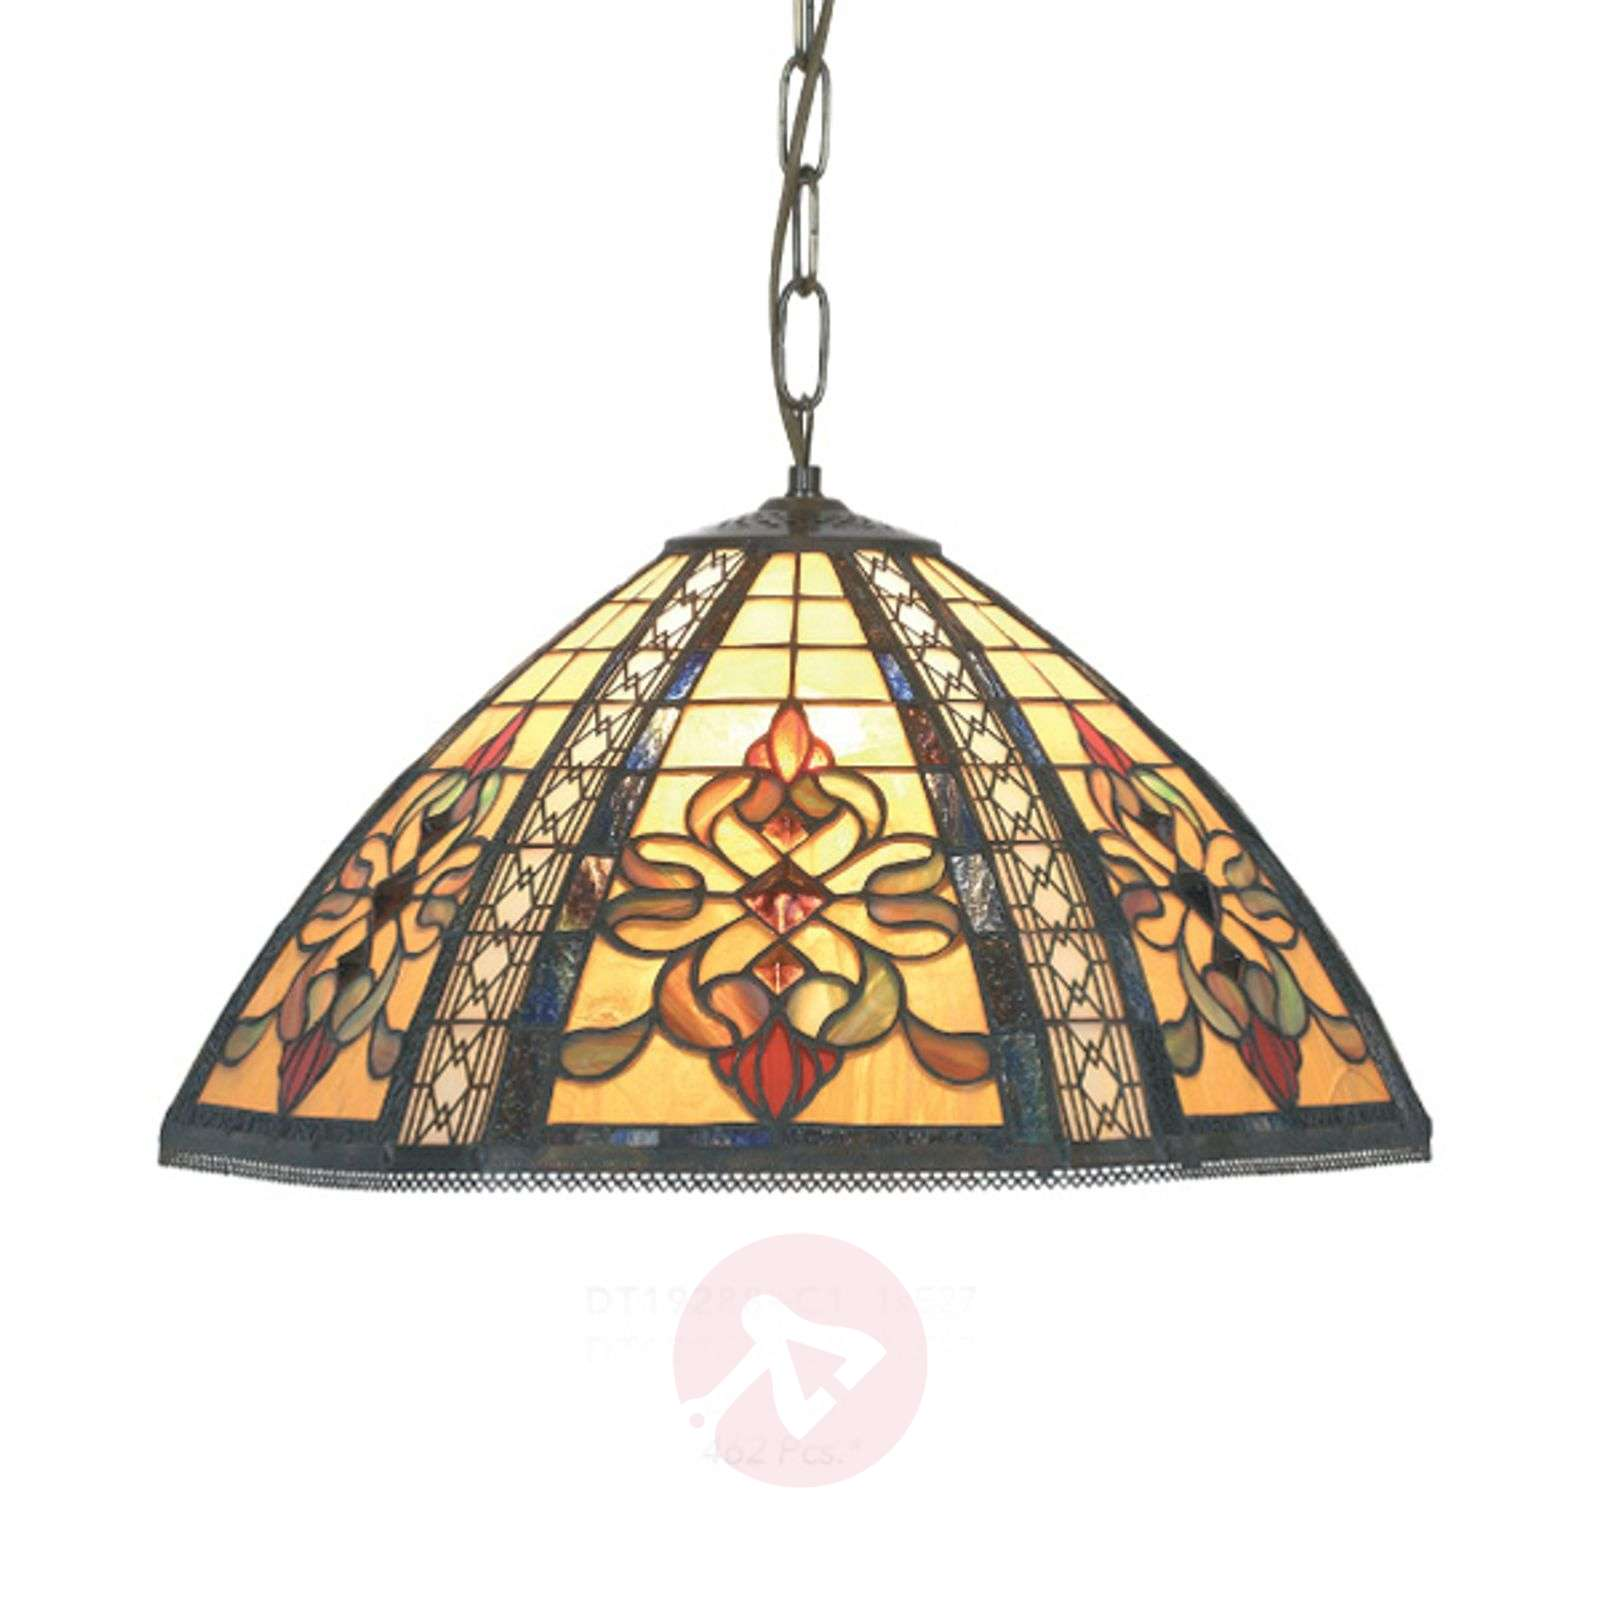 Grote hanglamp Despina in Tiffany-stijl-1032143X-01